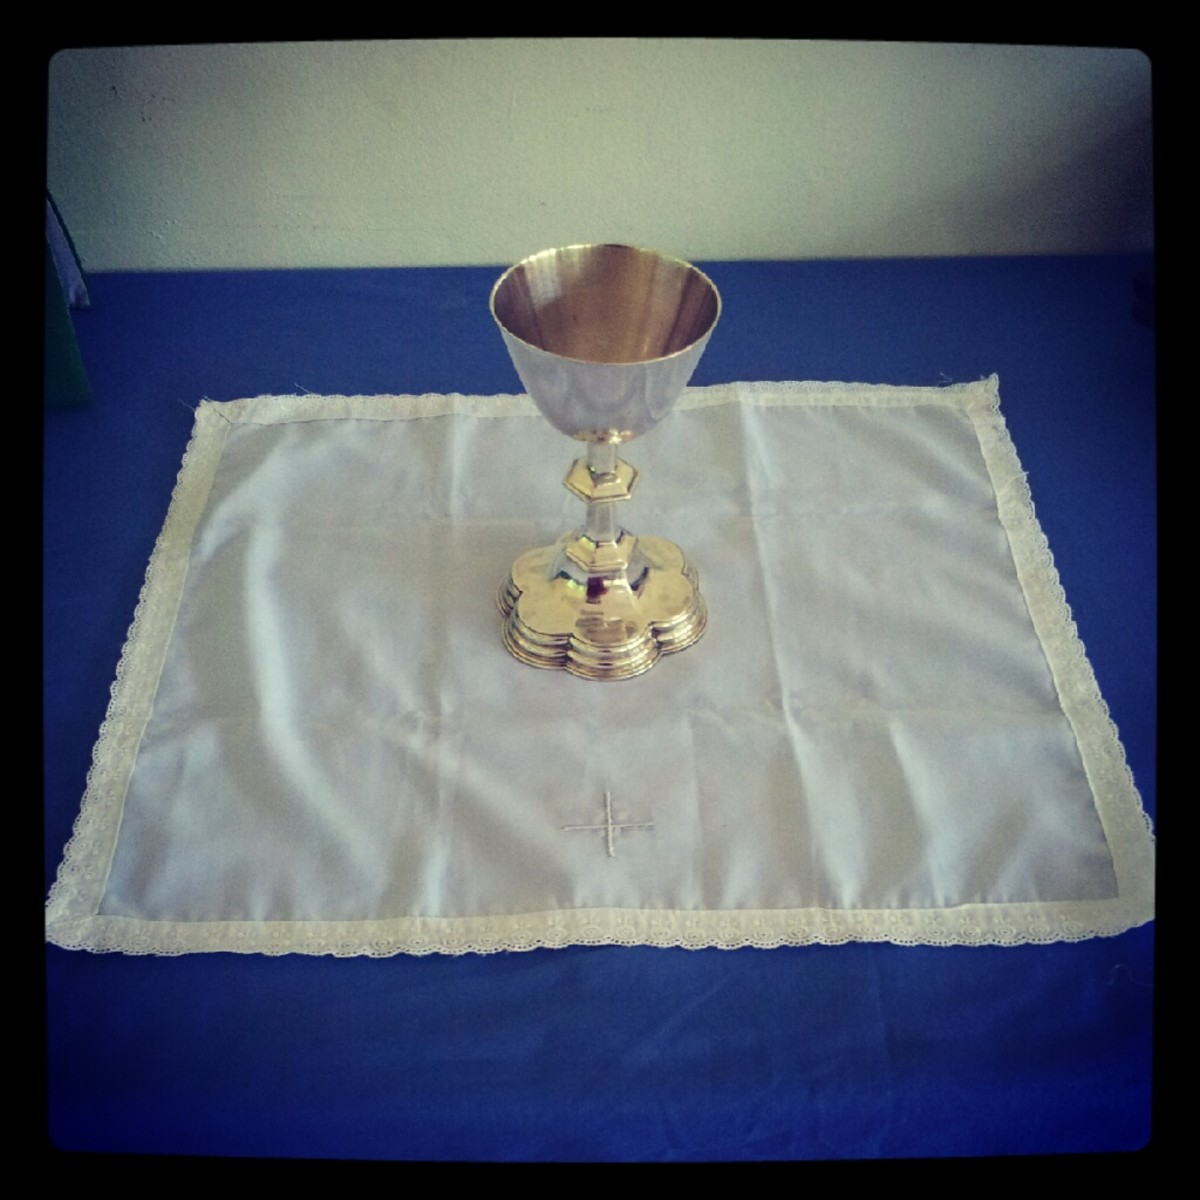 Step 2: Place the Celebrant's Chalice in the centre of the Corporal. If there is a Cross, the Cross should face the Celebrant